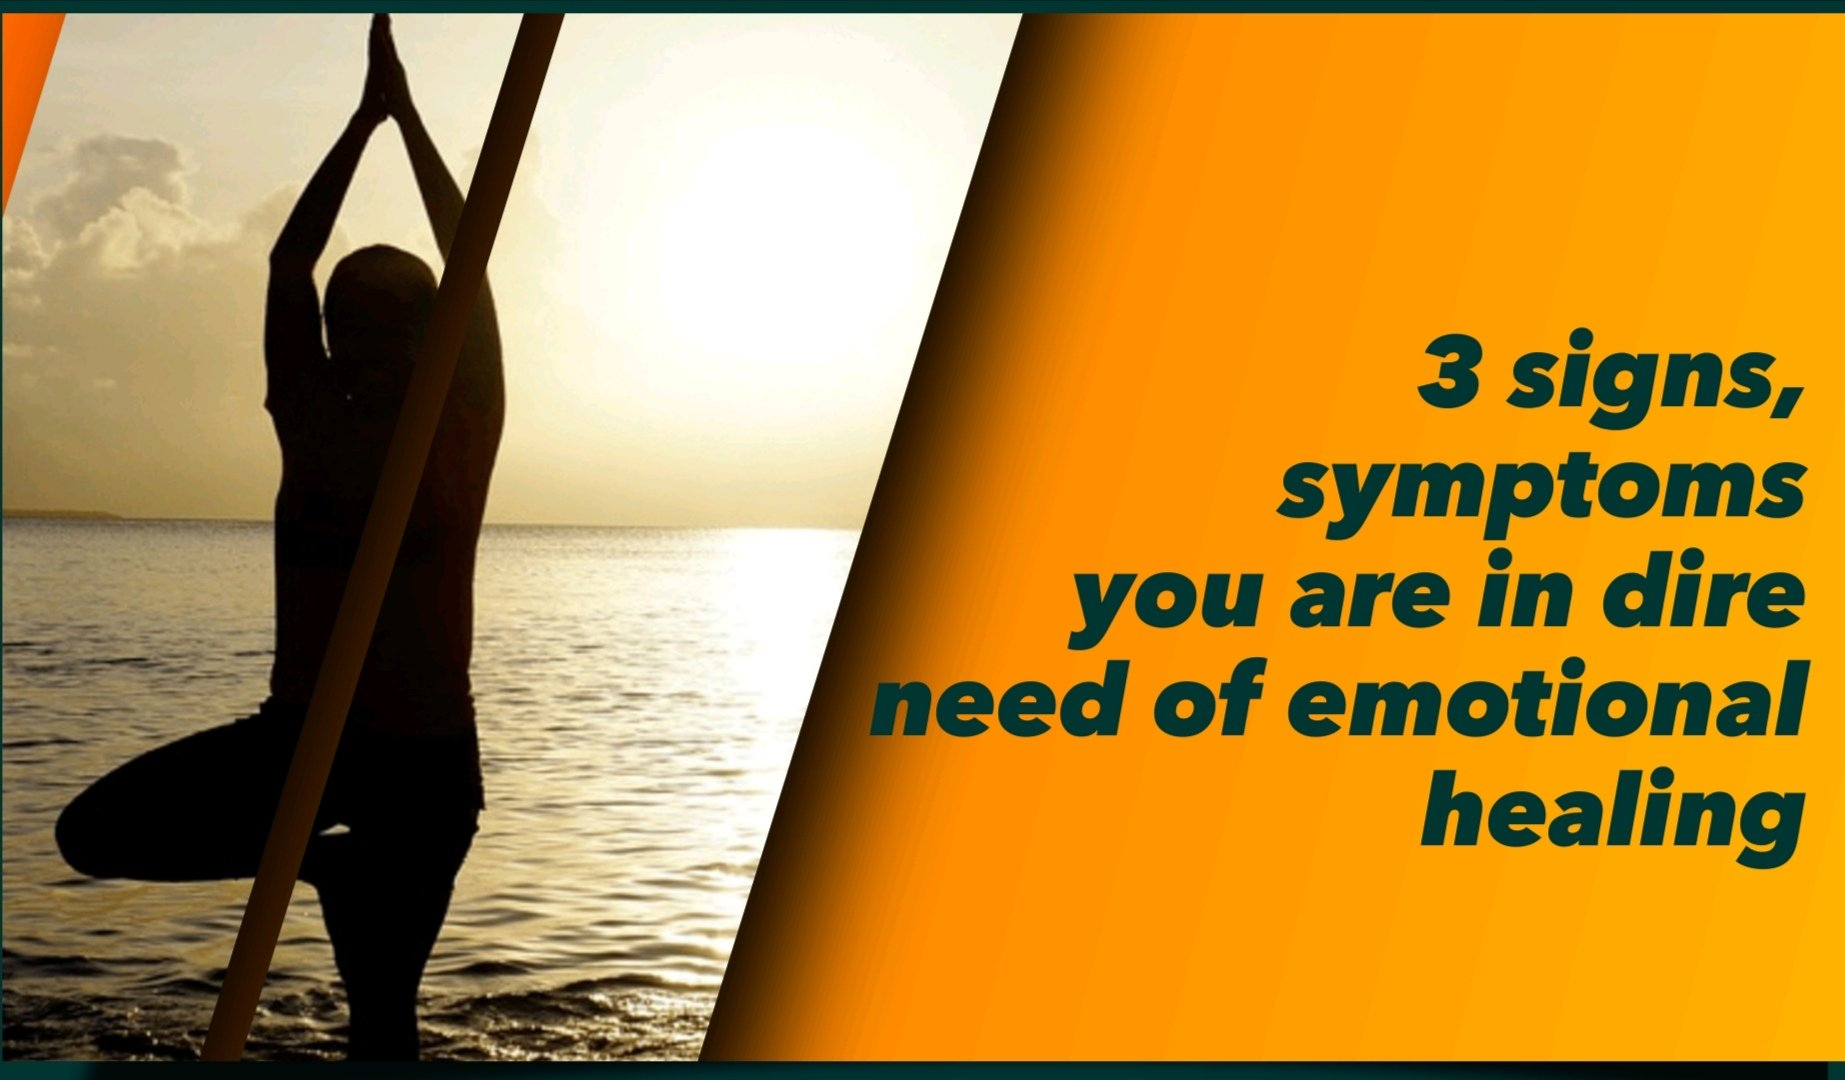 3 Signs, Symptoms You Are In Dire Need Of Emotional Healing